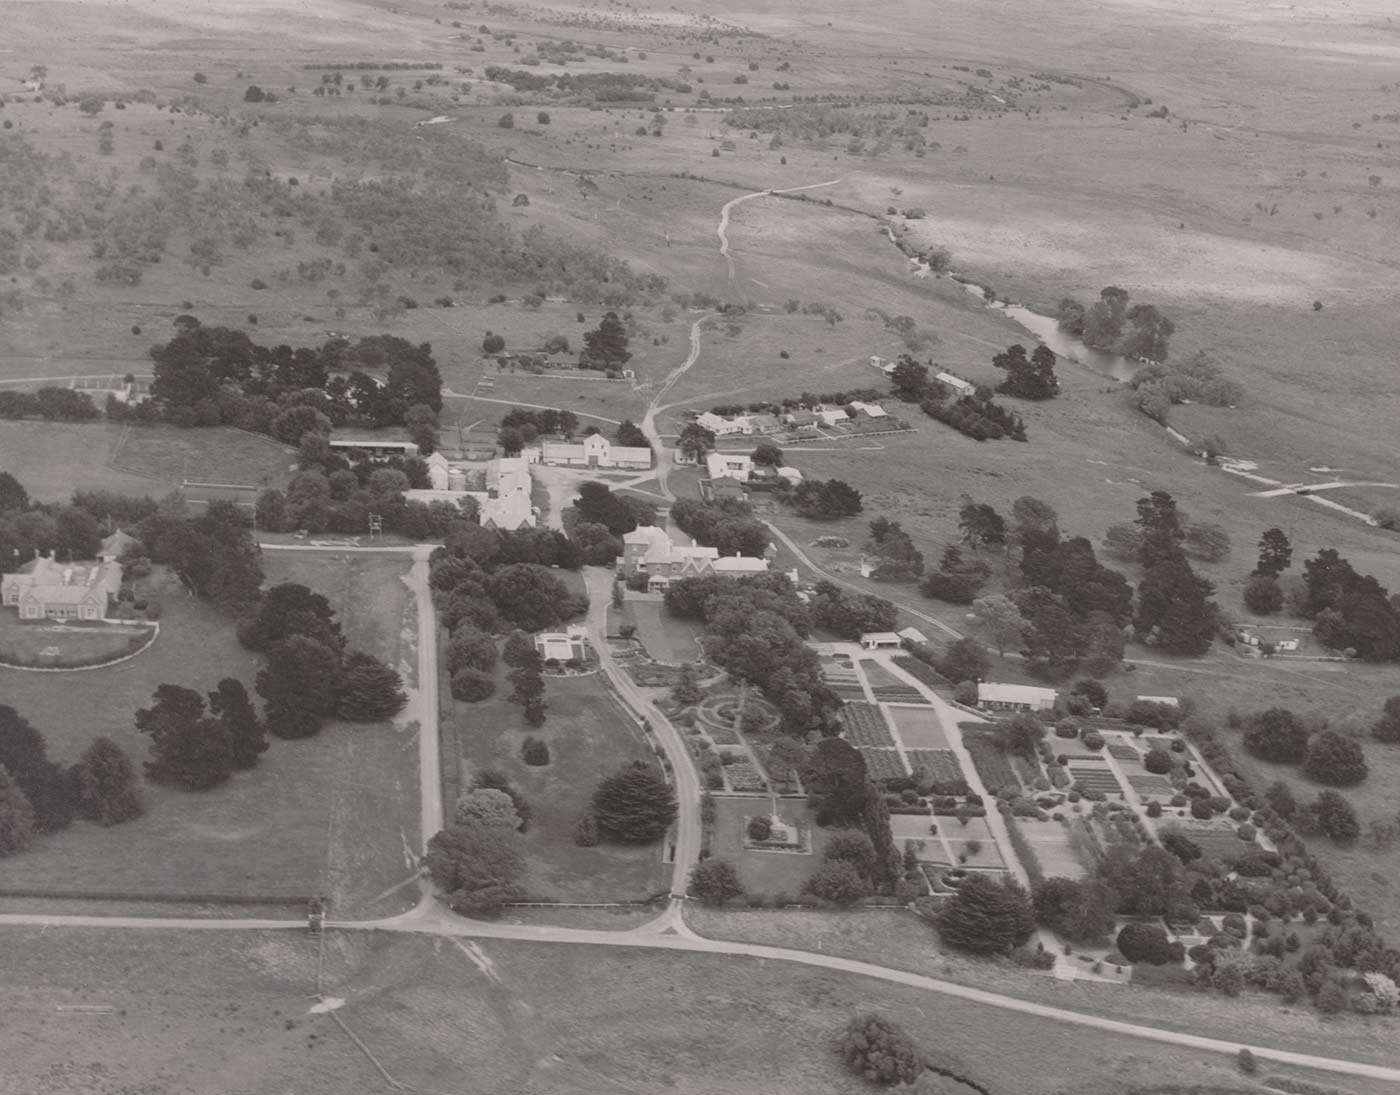 Black and white aerial photo of Springfield, showing several large buildings at centre, with formal gardens in the foreground and a small watercourse and paddocks behind.